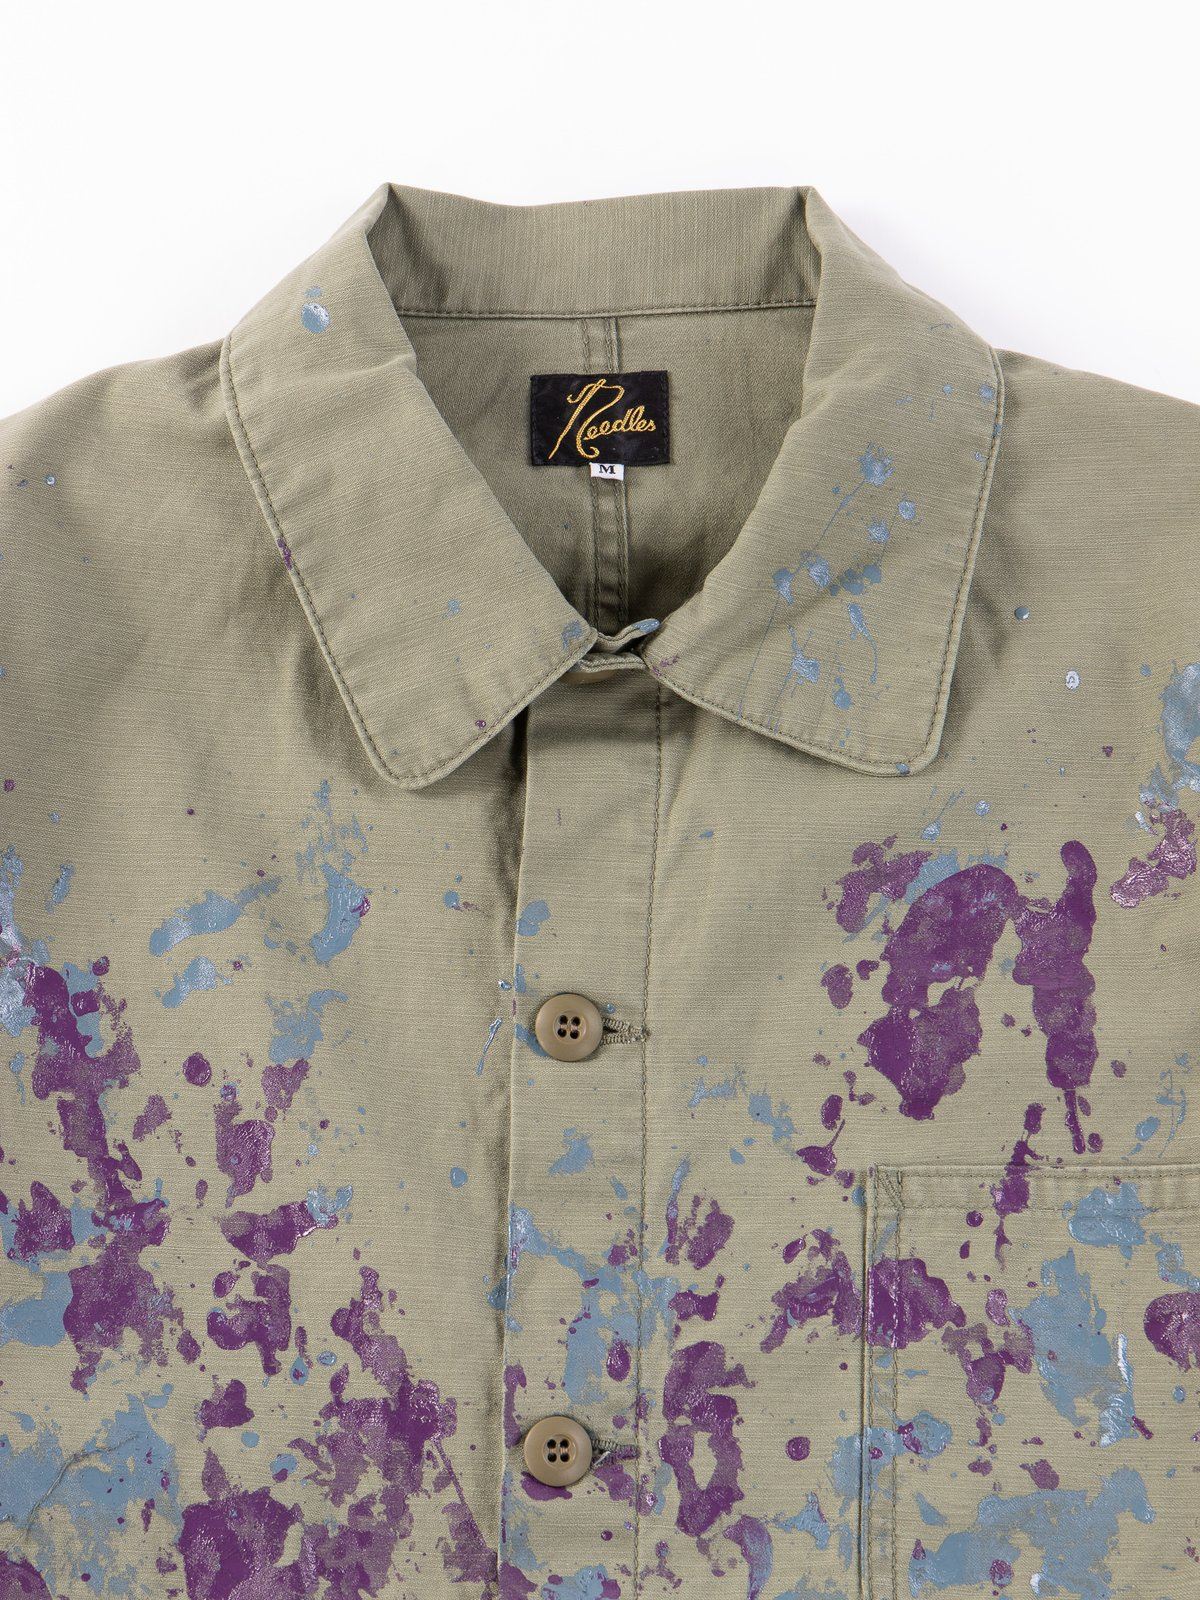 Olive Paint Sateen D.N Coverall - Image 2